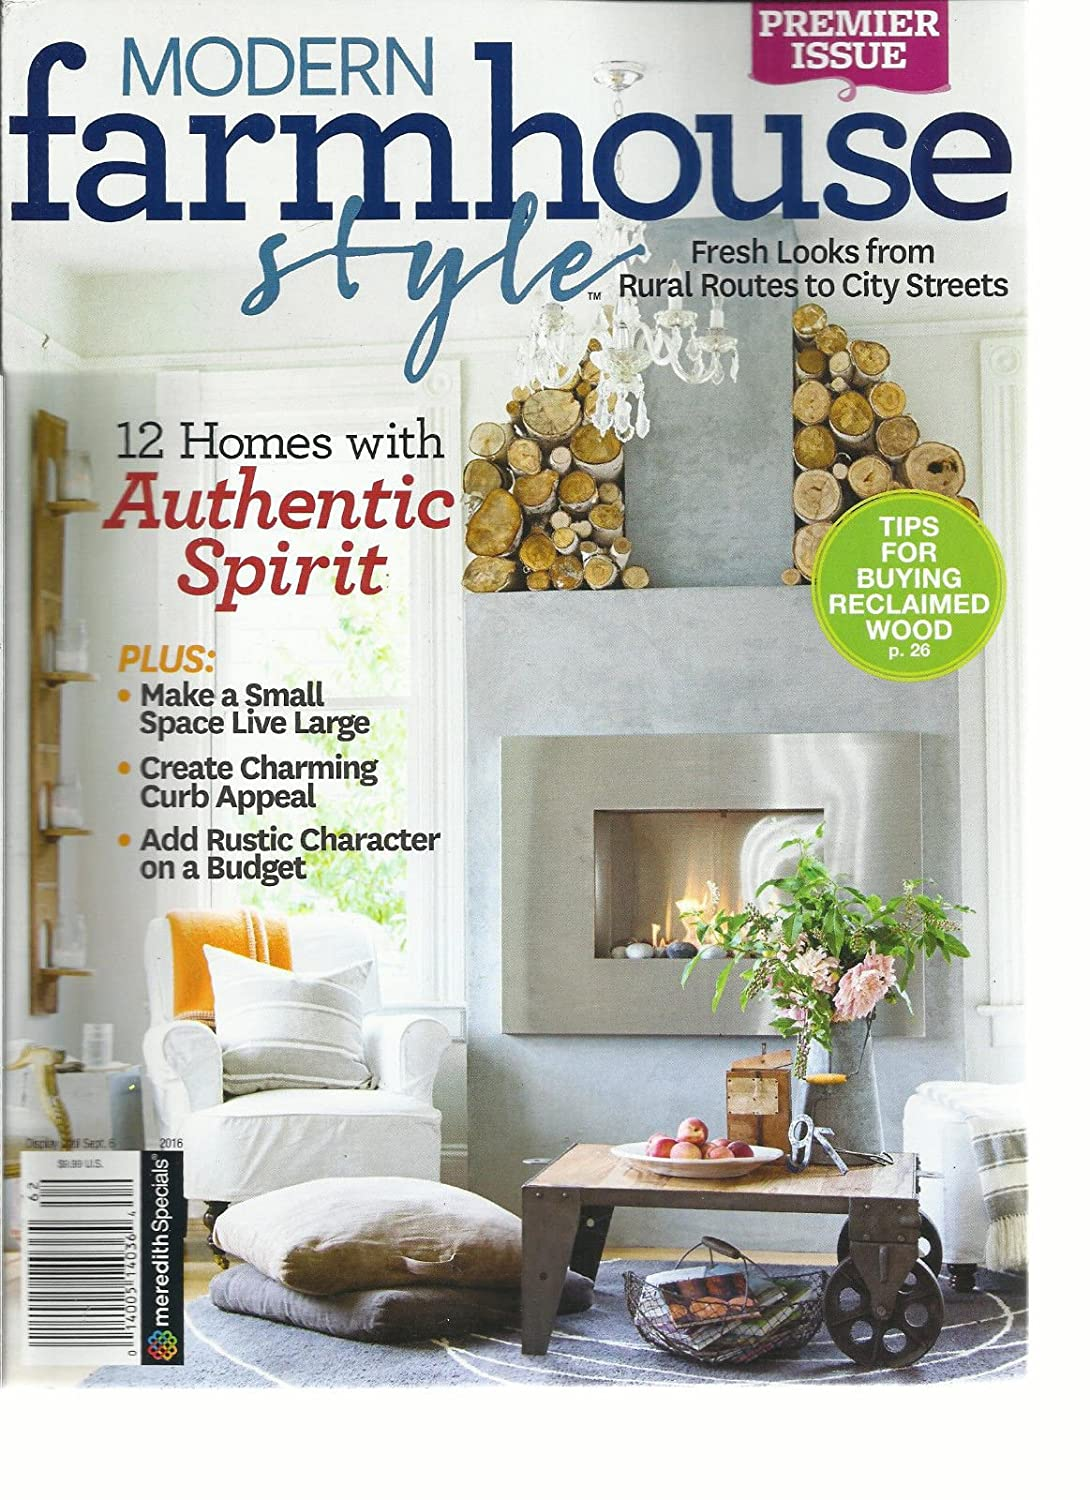 amazoncom modern farmhouse style magazine premier issue 2016 12 homes with authentic health personal care